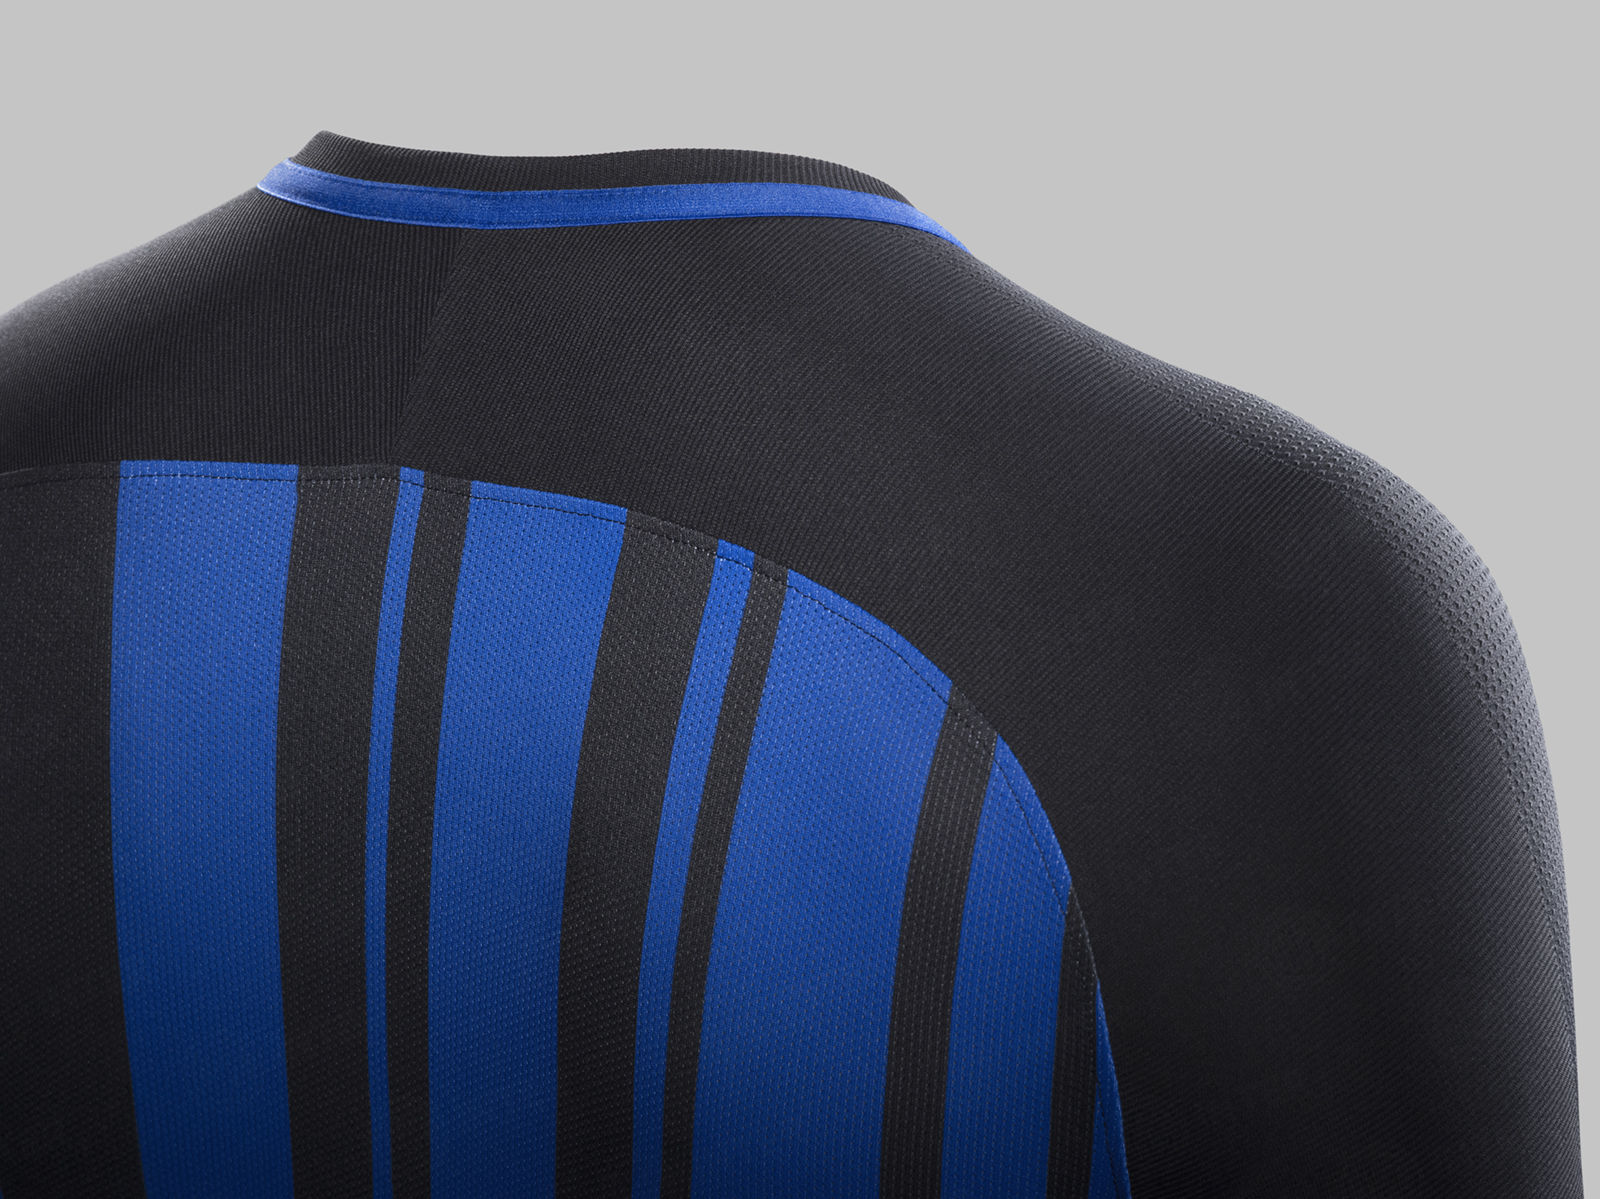 Discover Inter's new home kit